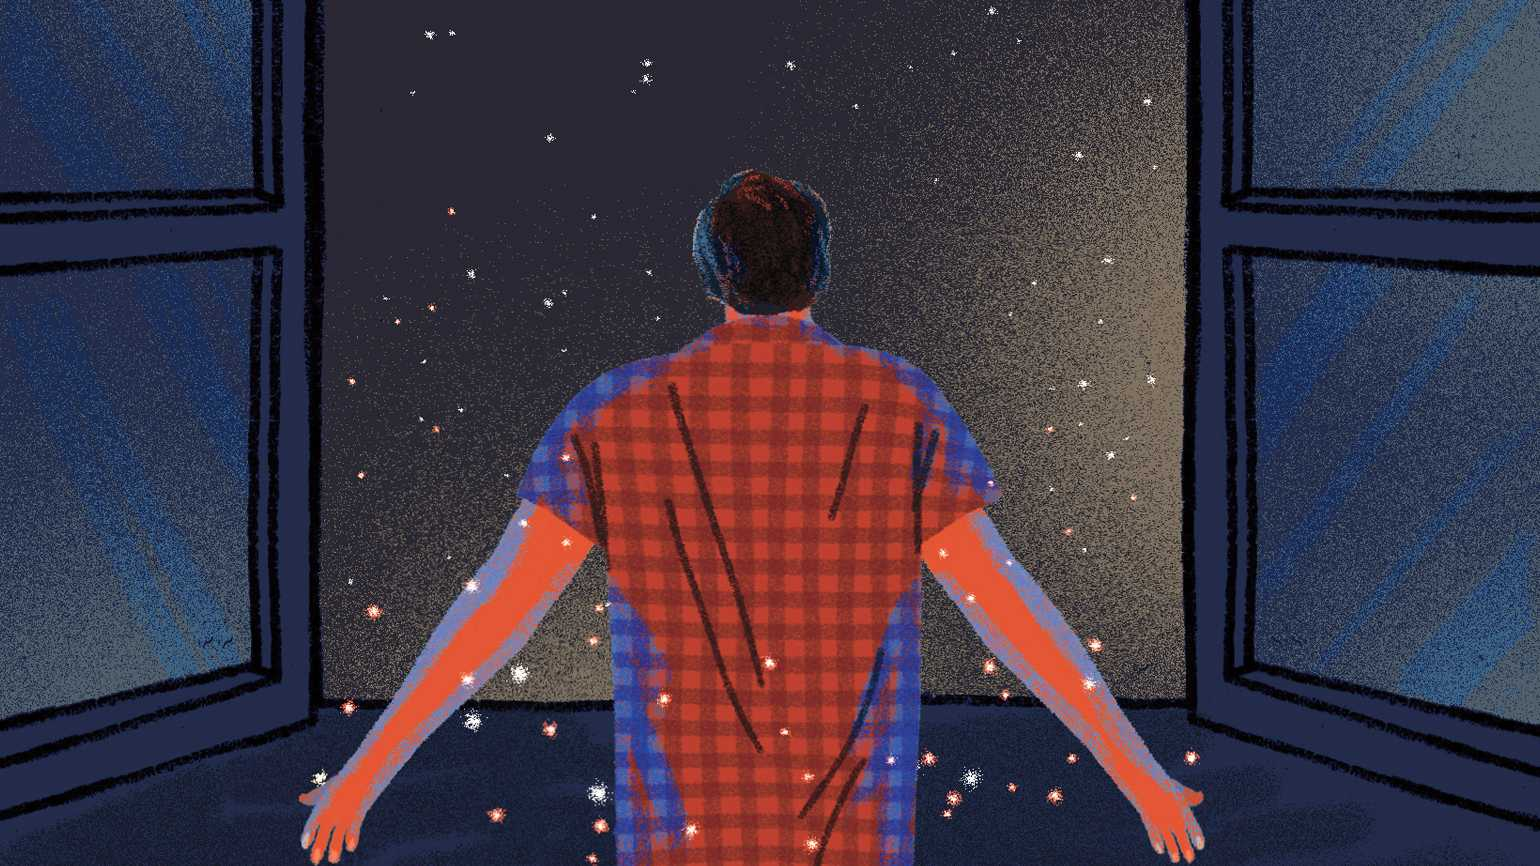 An illustration of a man in his pajamas observing a starry night; Illustration by Jesus Sotes